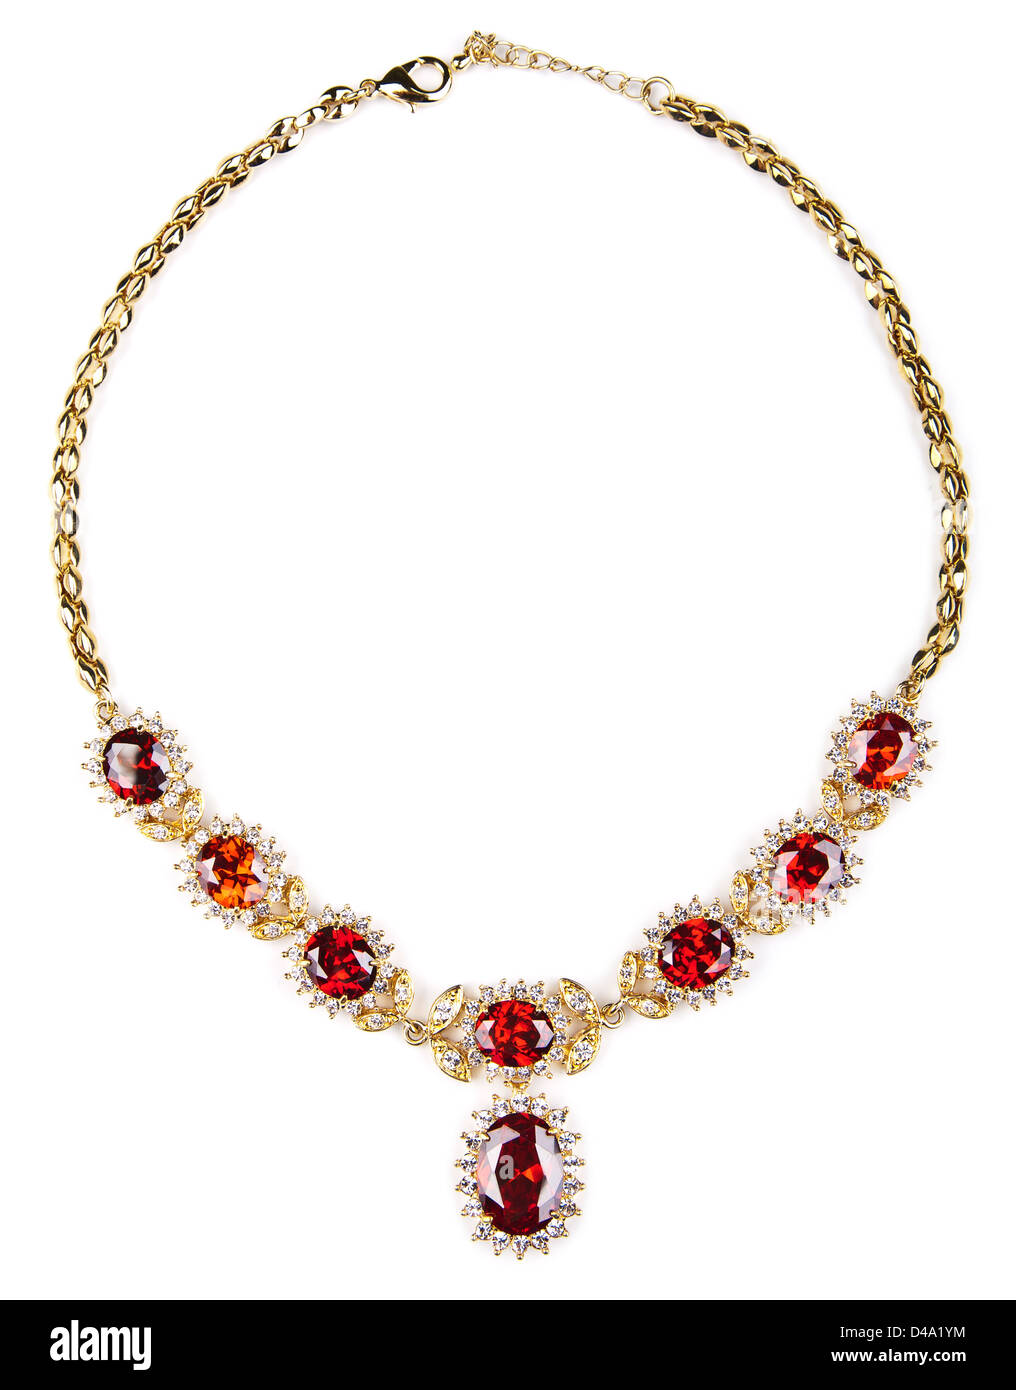 gold necklace with gems isolated - Stock Image